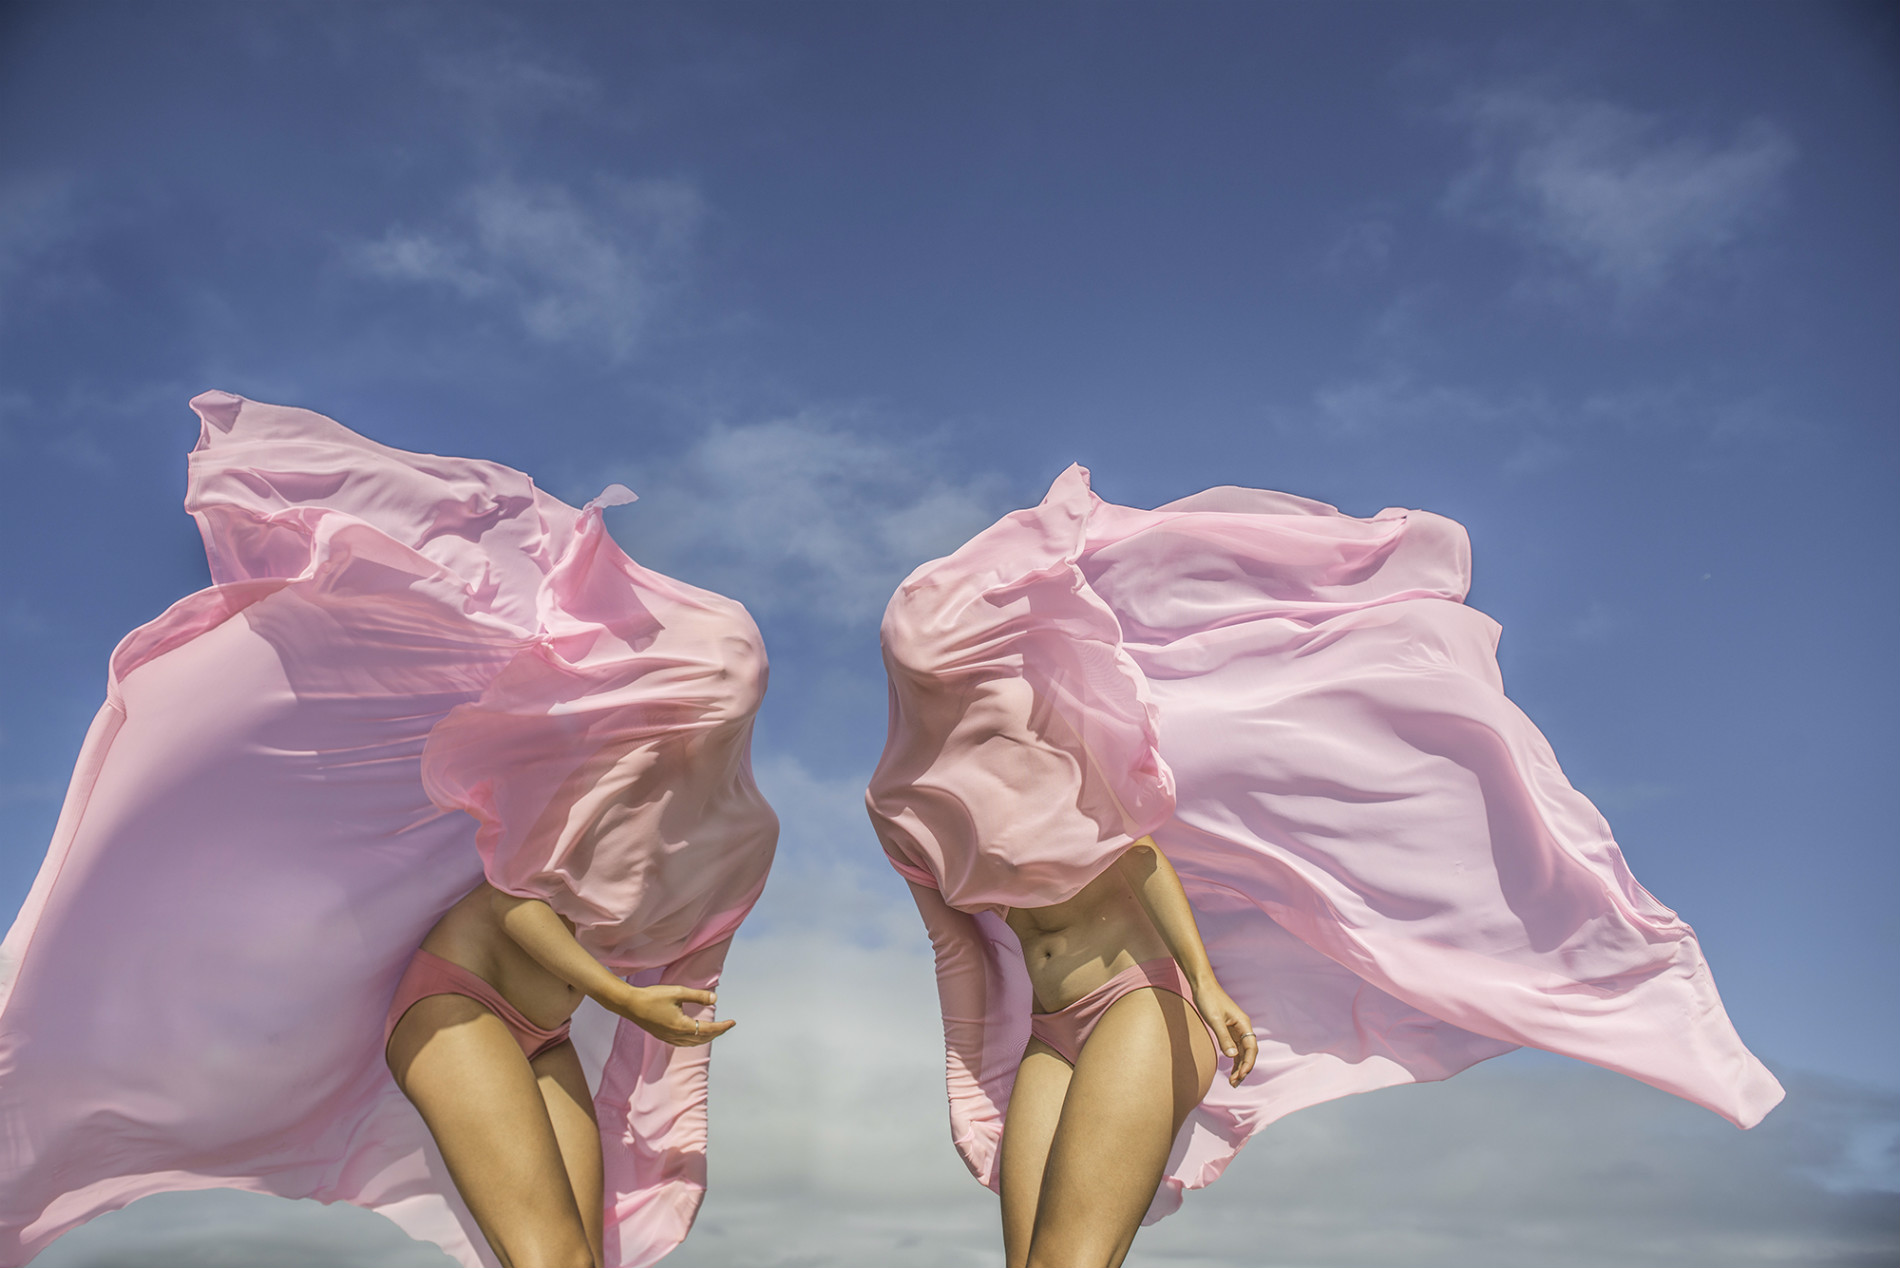 THE BEAUTIFULLY GRUESOME MIND OF PRUE STENT